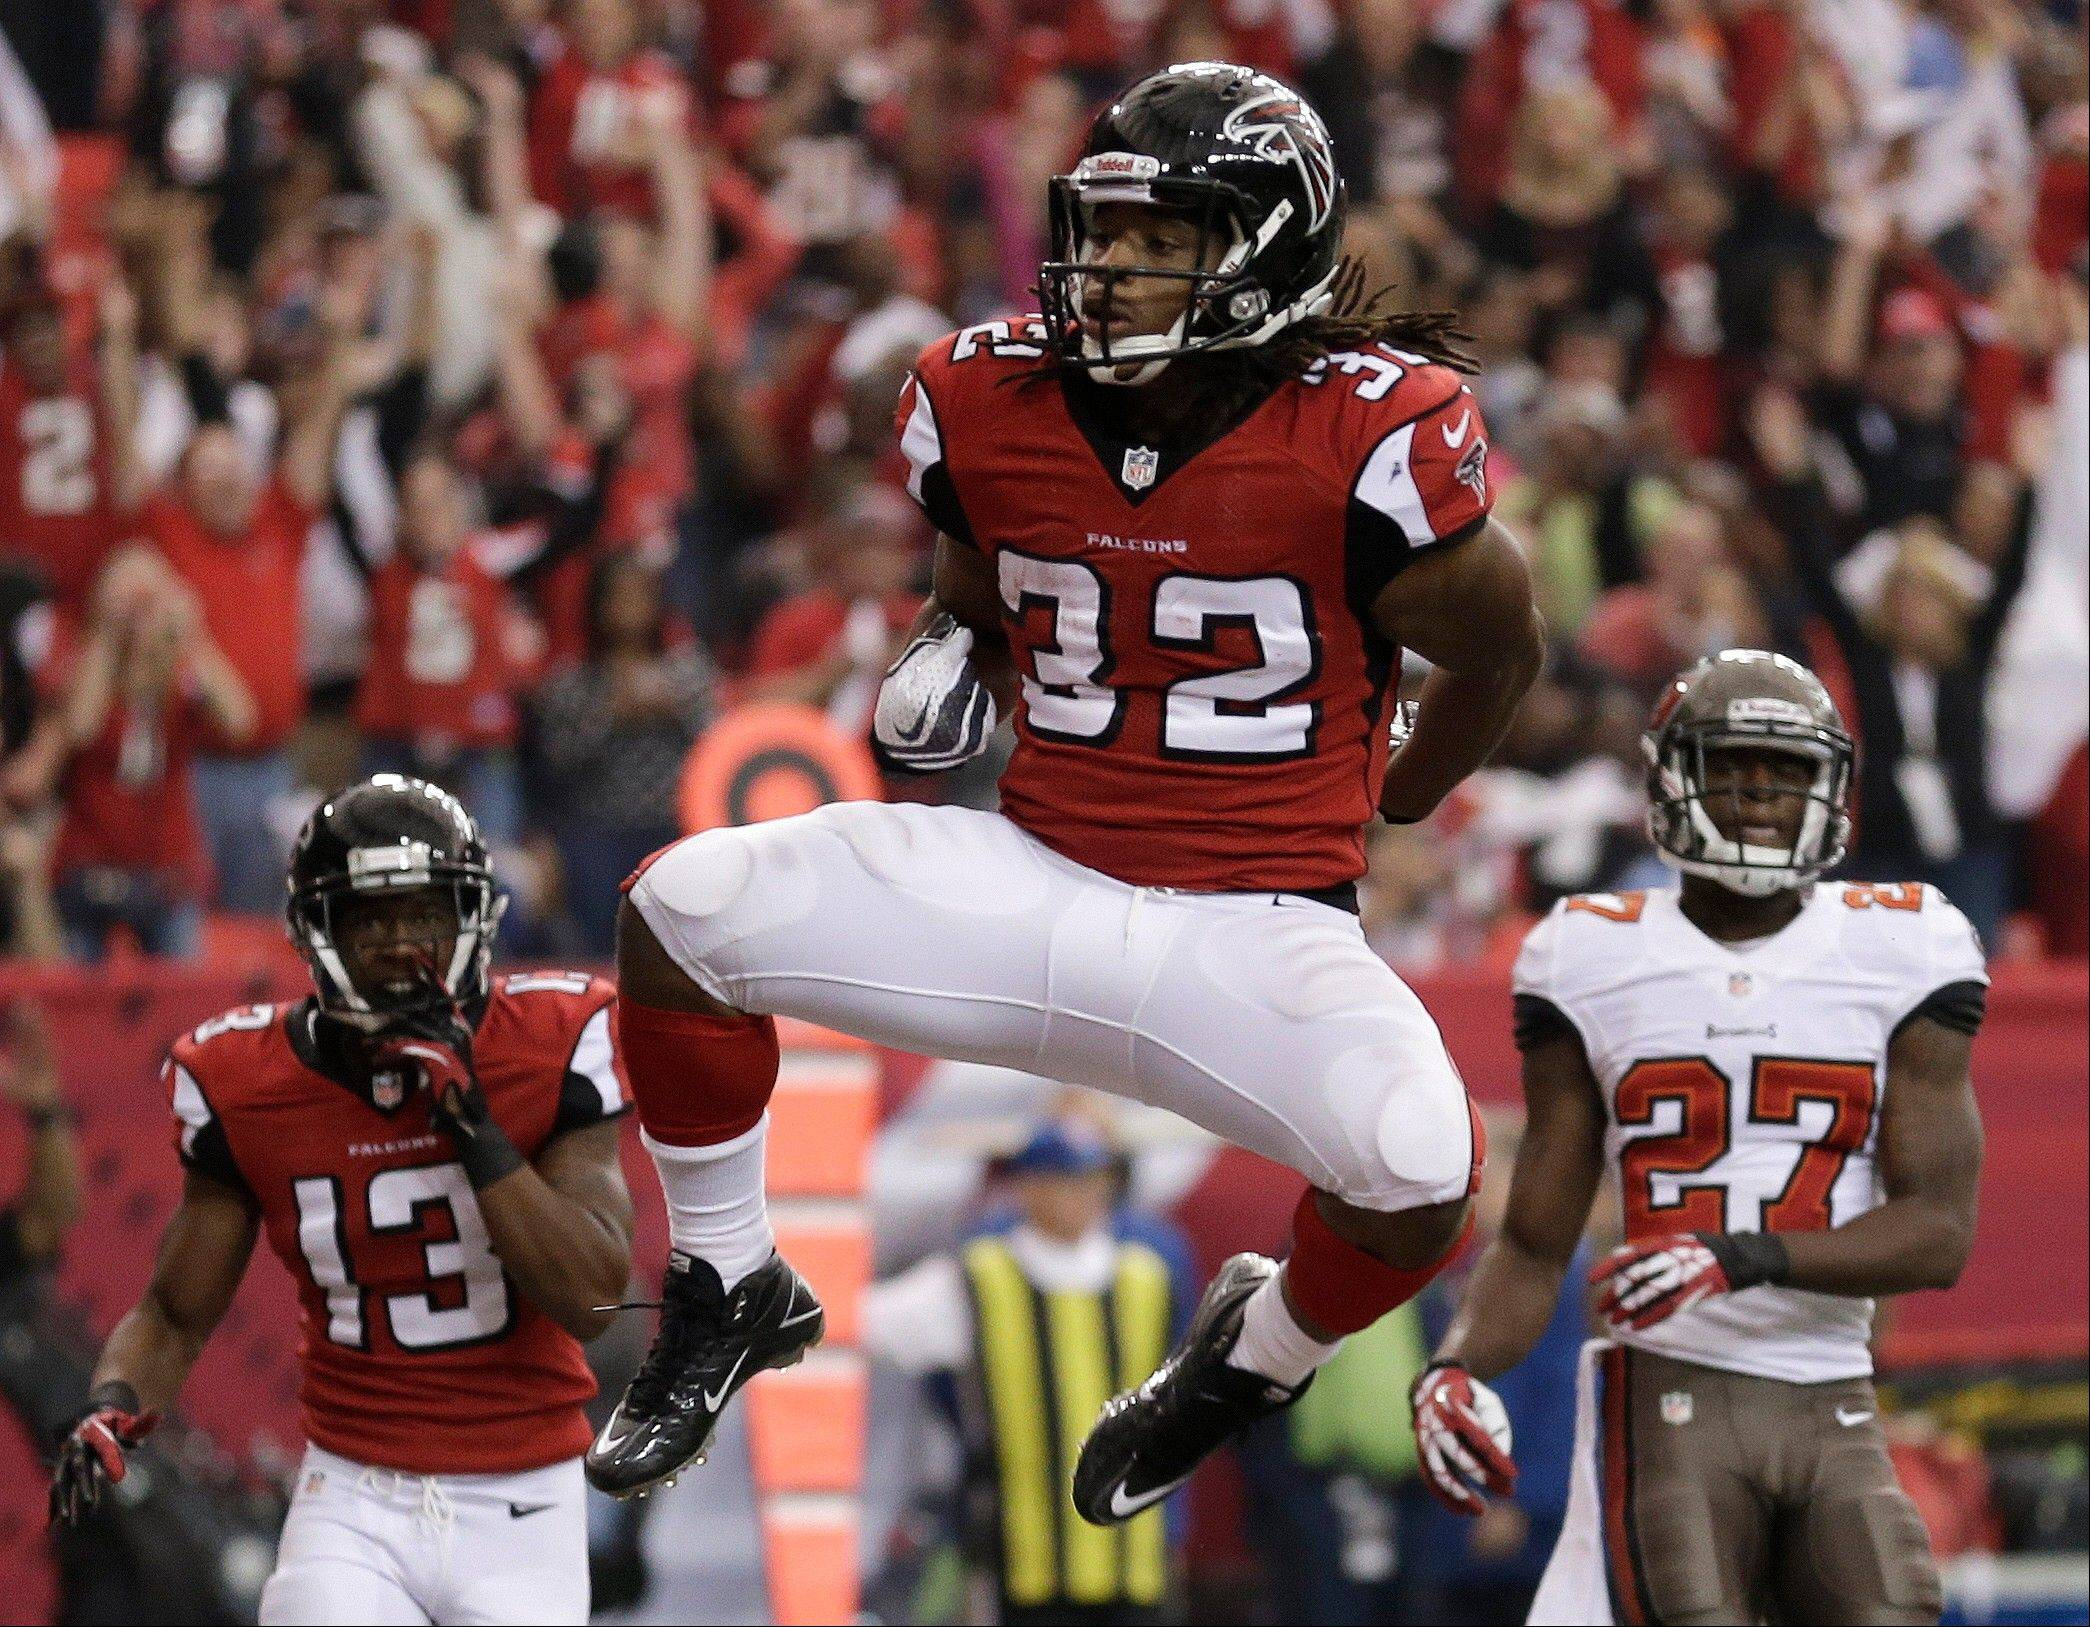 Atlanta Falcons running back Jacquizz Rodgers (32) celebrates his touchdown against the Tampa Bay Buccaneers during the second half of an NFL football game, Sunday, Oct. 20, 2013, in Atlanta.